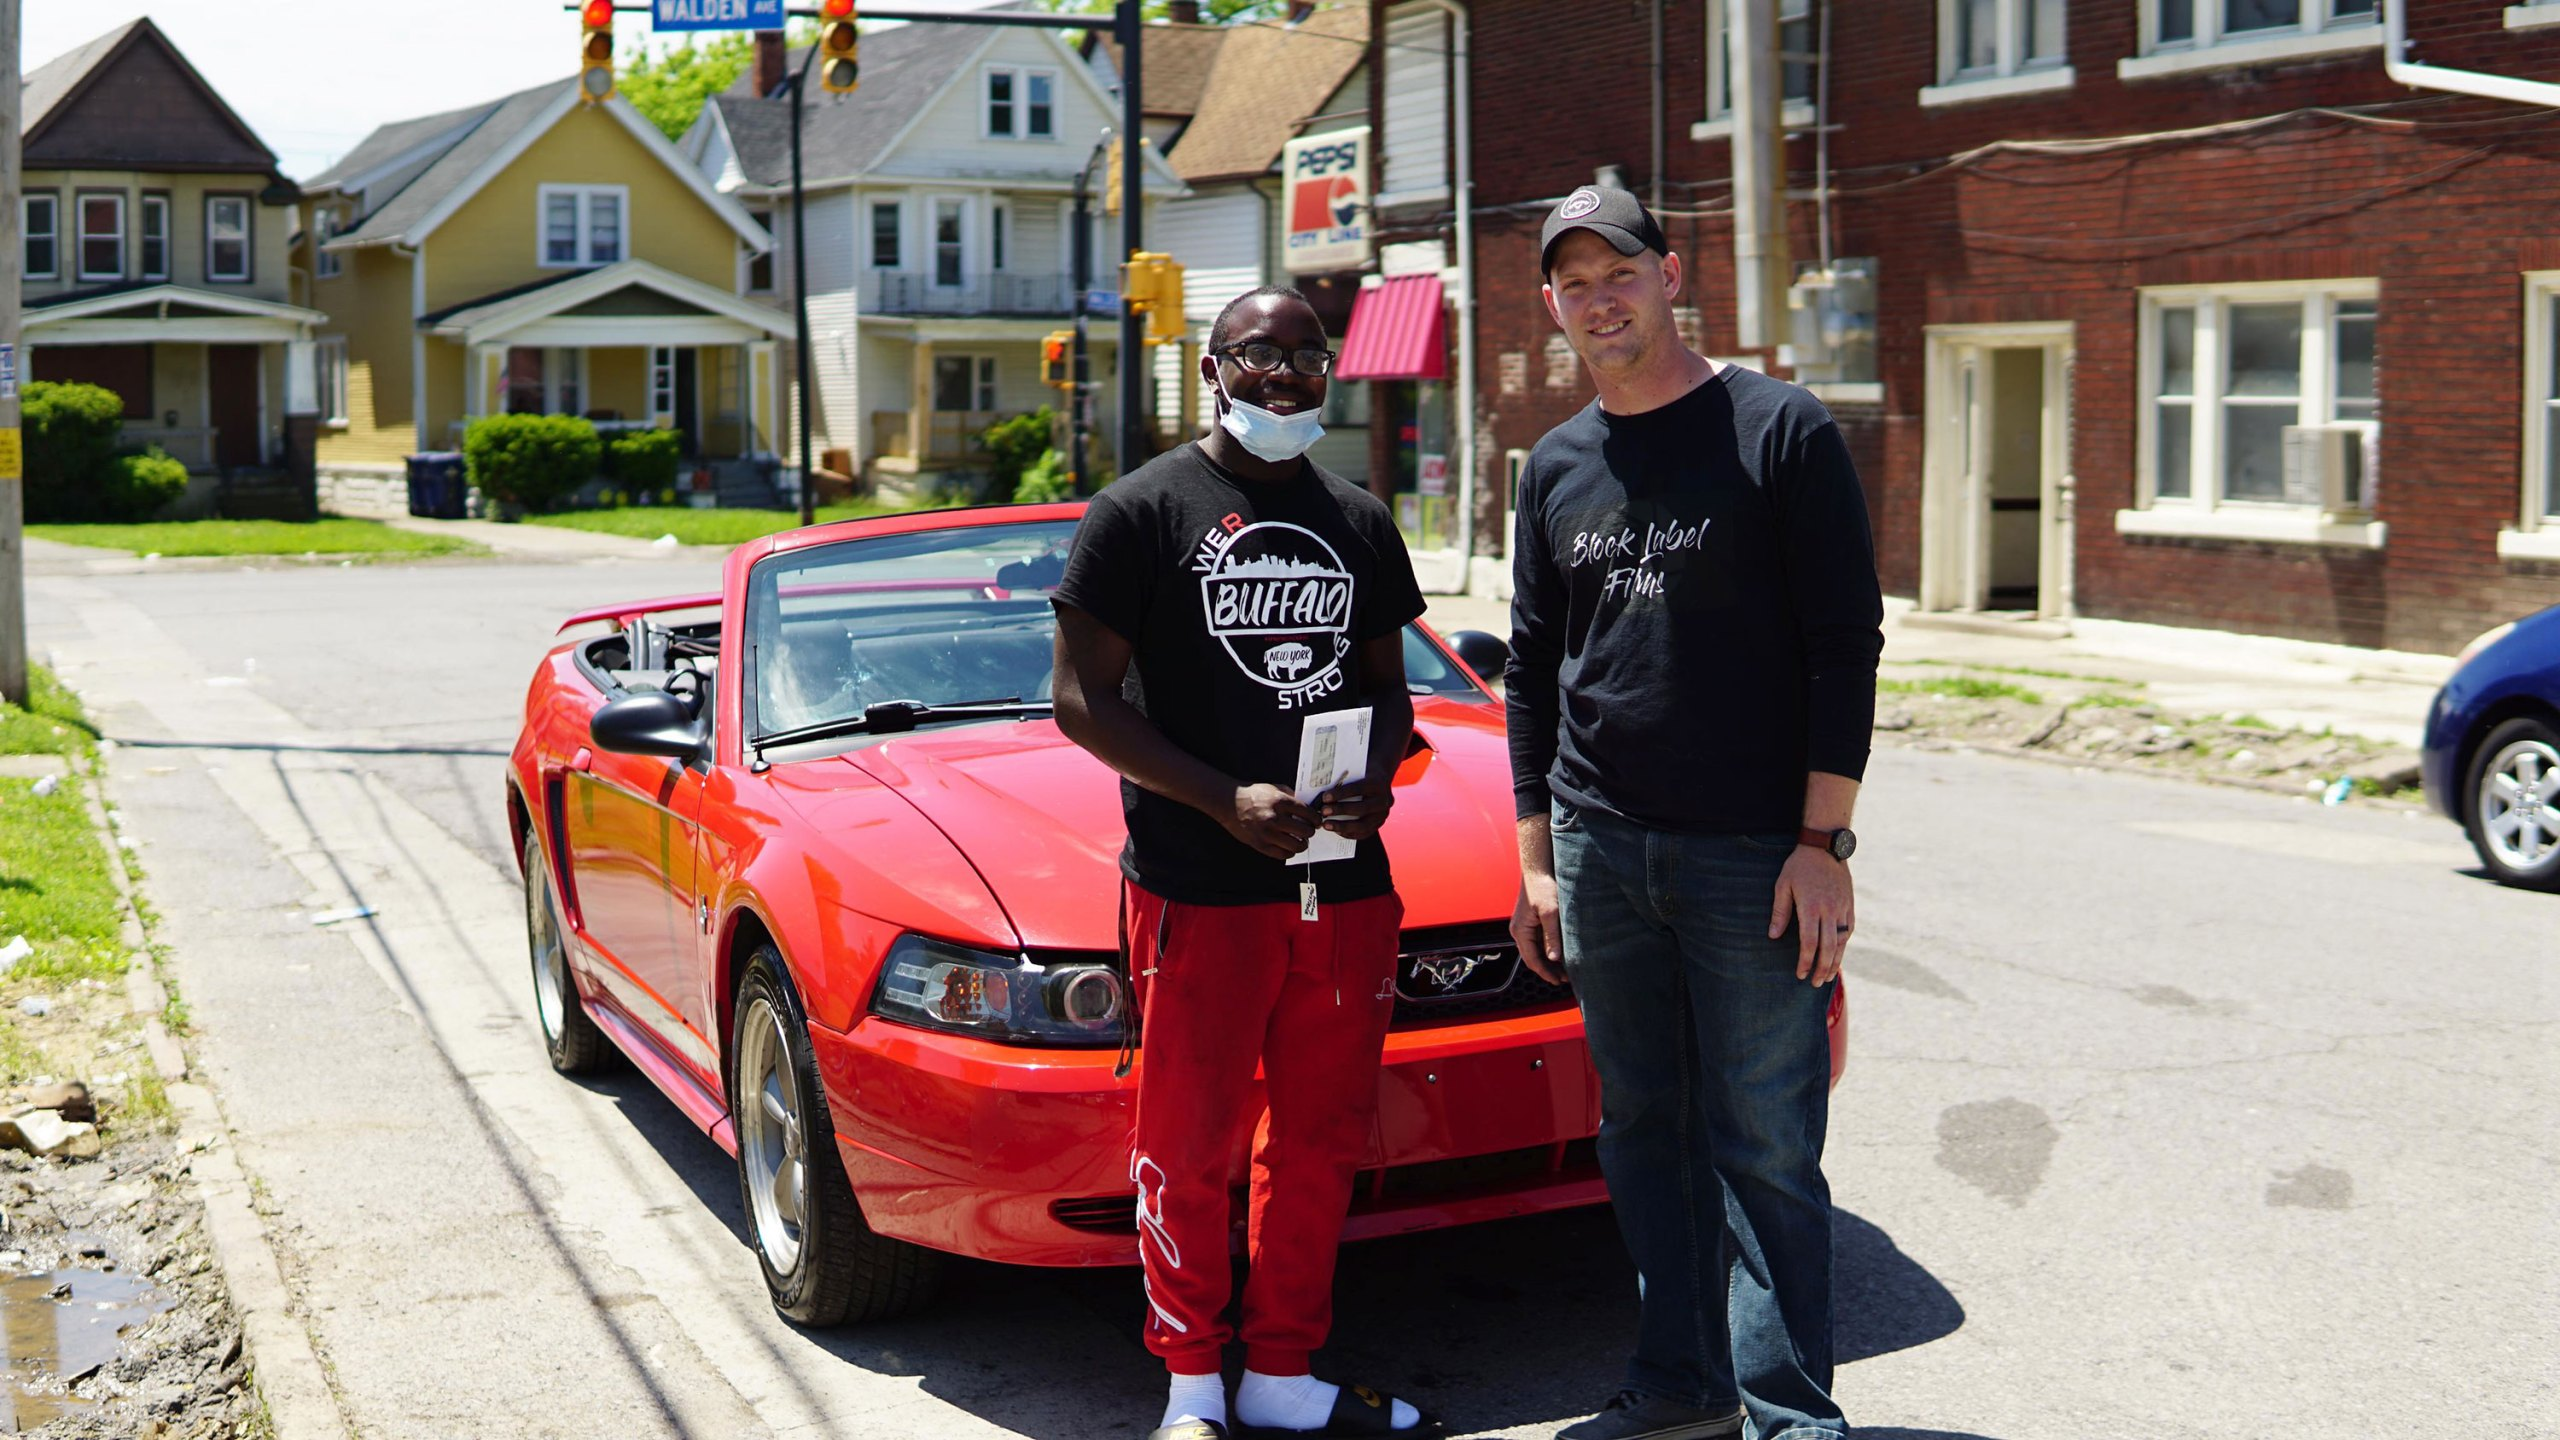 Antonio Gwynn Jr., left, is now the owner of a 2004 Mustang after Matt Block decided to give him the car as a reward for Gwynn's work cleaning up after protests in Buffalo, New York. Credit: Matt Block